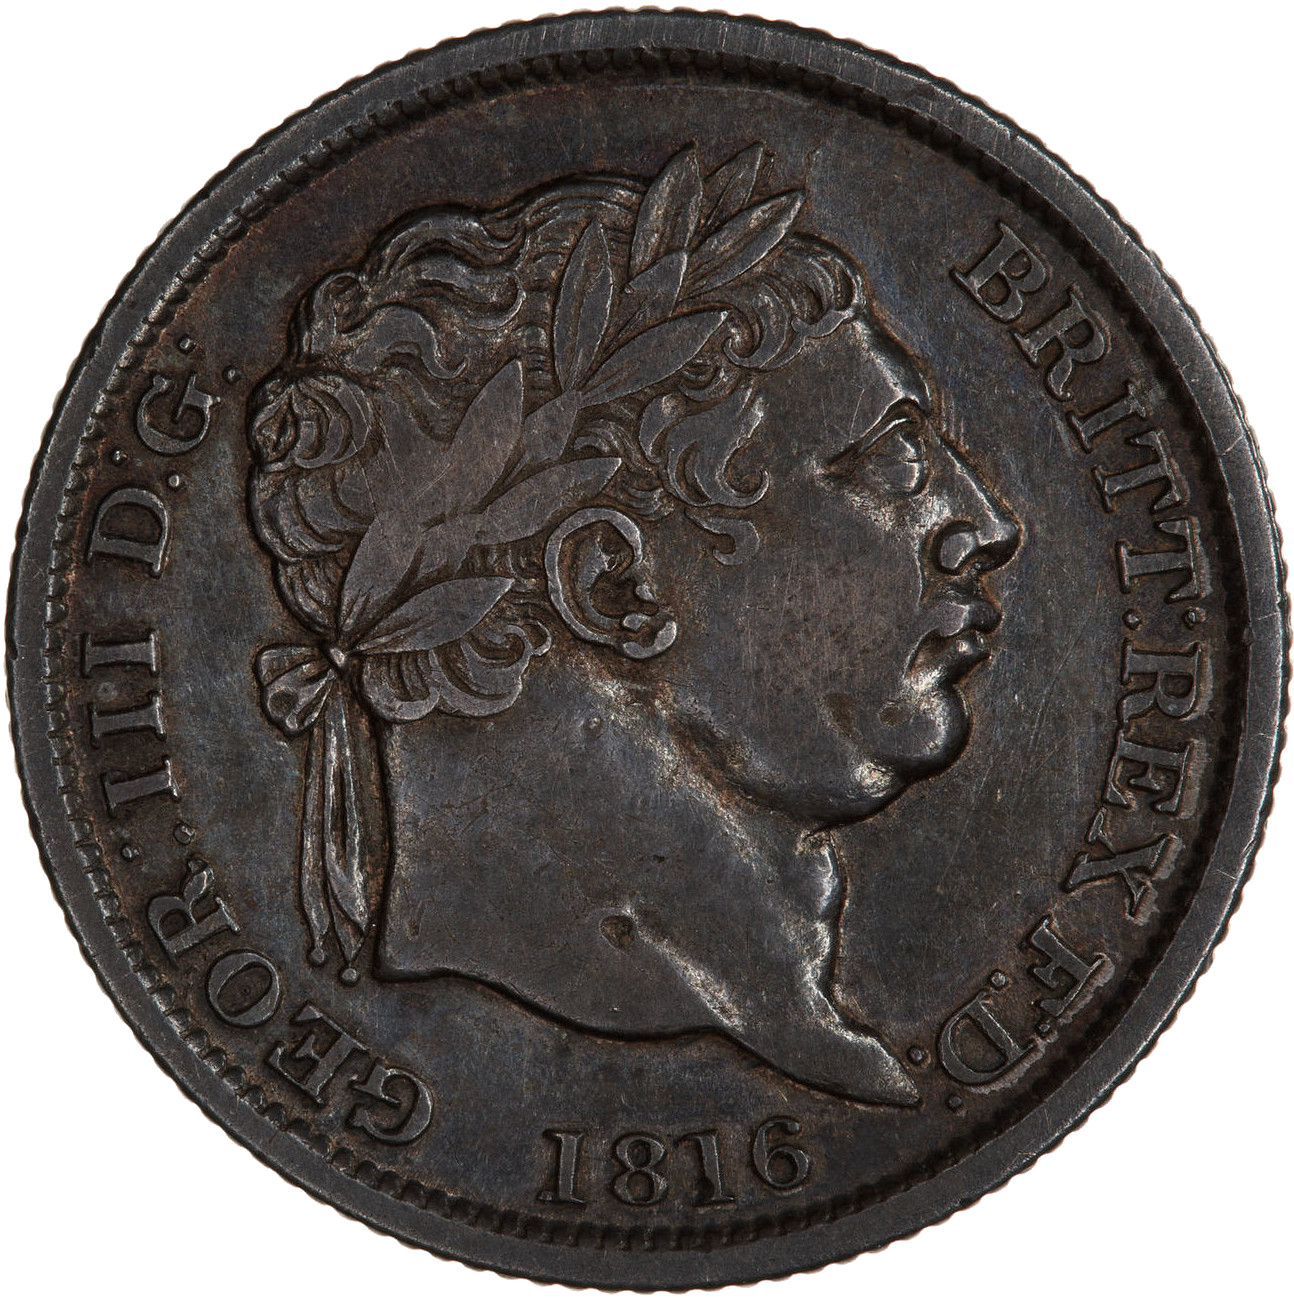 Shilling 1816: Photo Coin - Shilling, George III, Great Britain, 1816